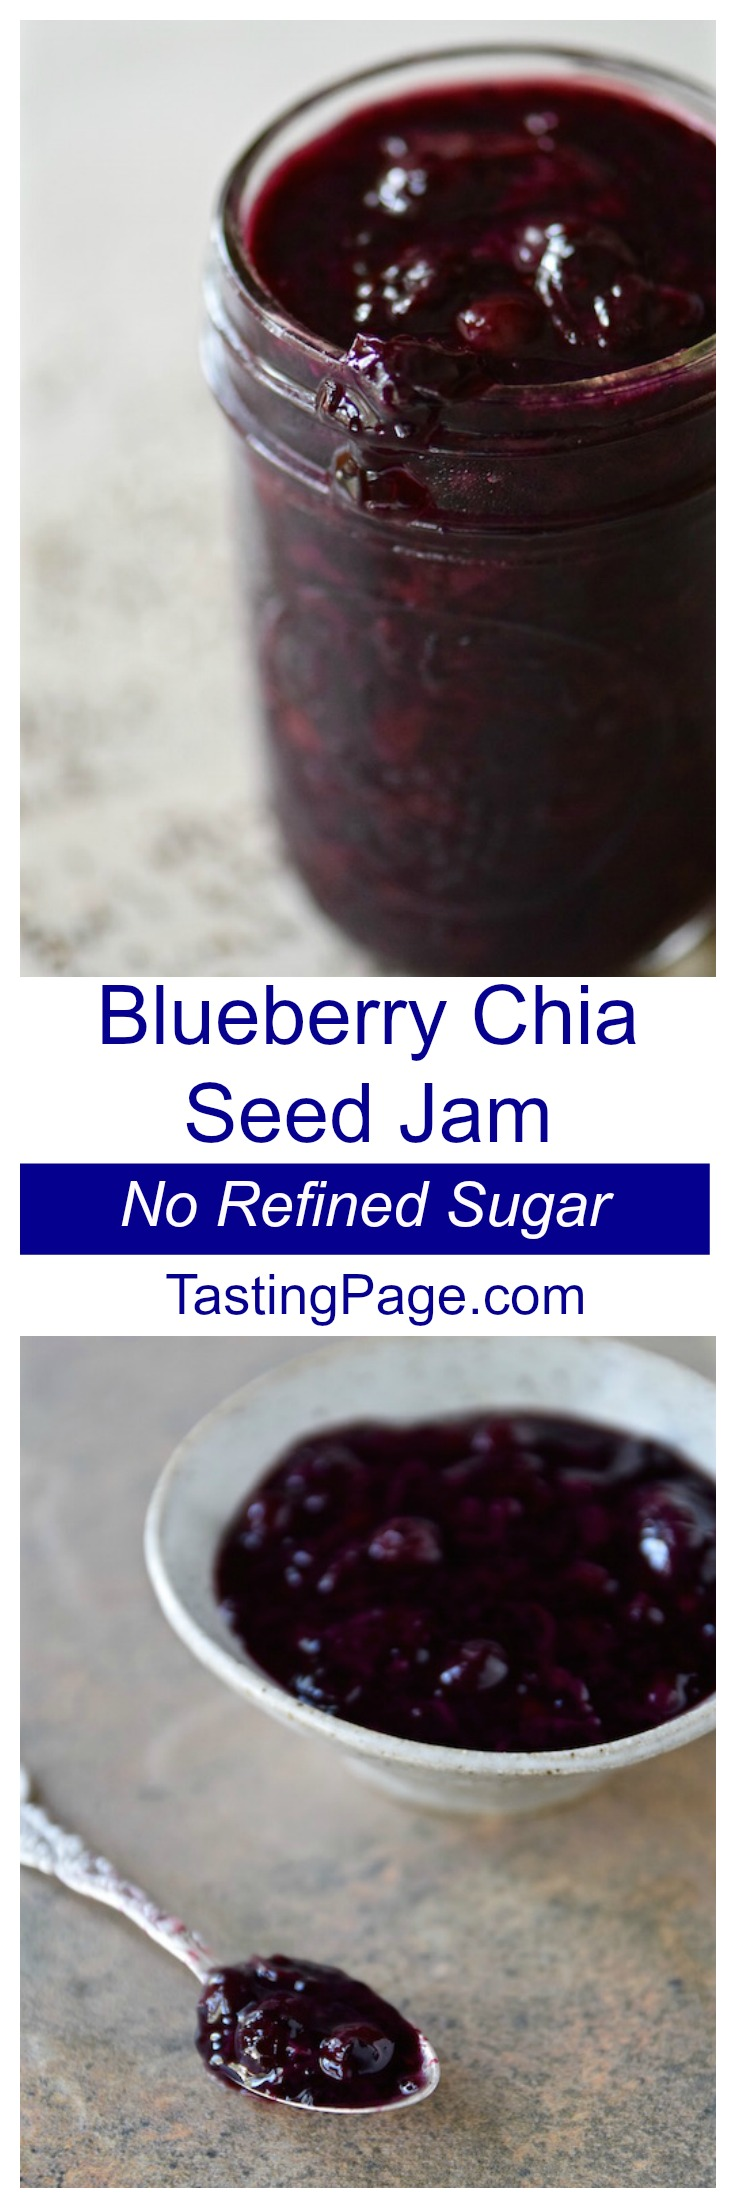 4 Ingredient Blueberry Vanilla Chia Seed jam with no refined sugar | TastingPage.com